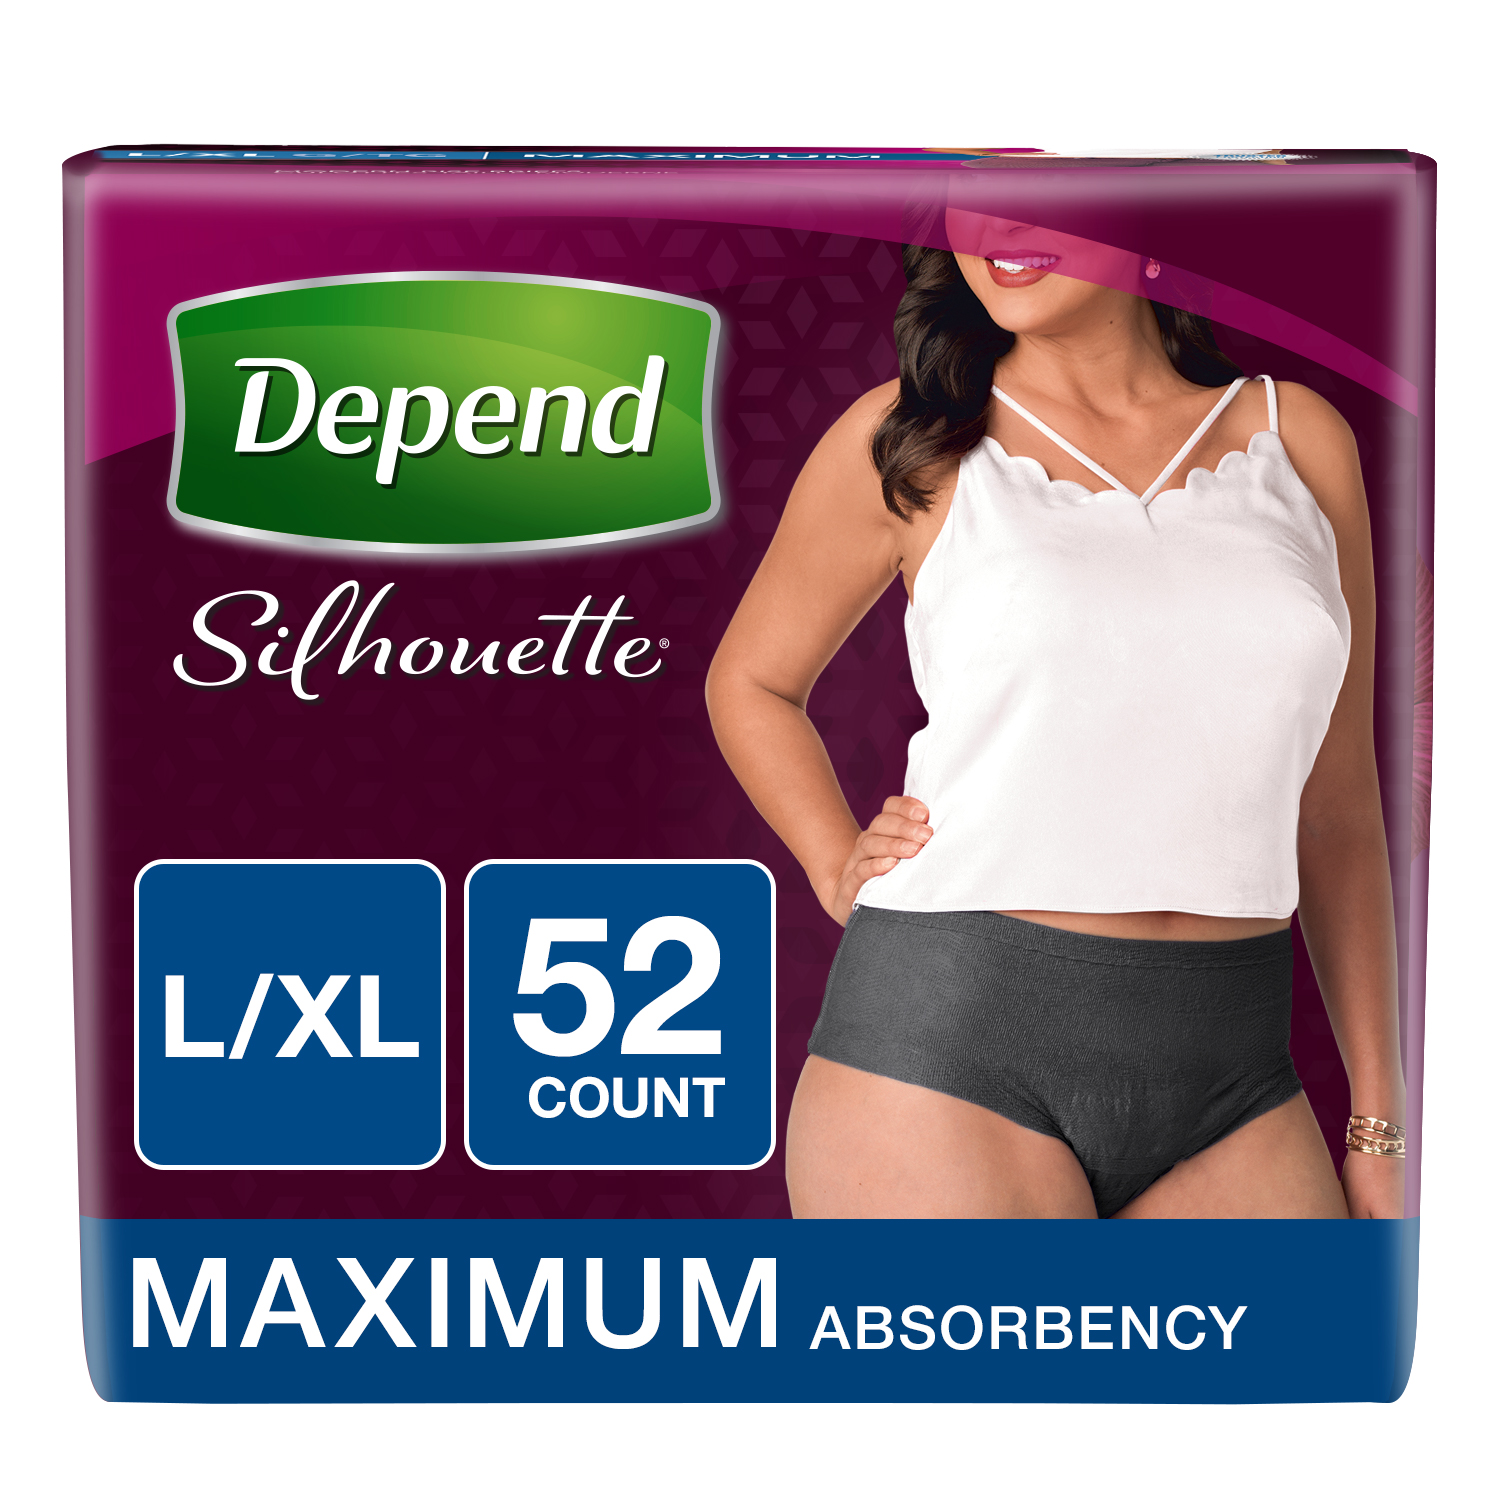 Depend Silhouette Incontinence Briefs for Women, Maximum Absorbency, L/XL, Black, 52 count